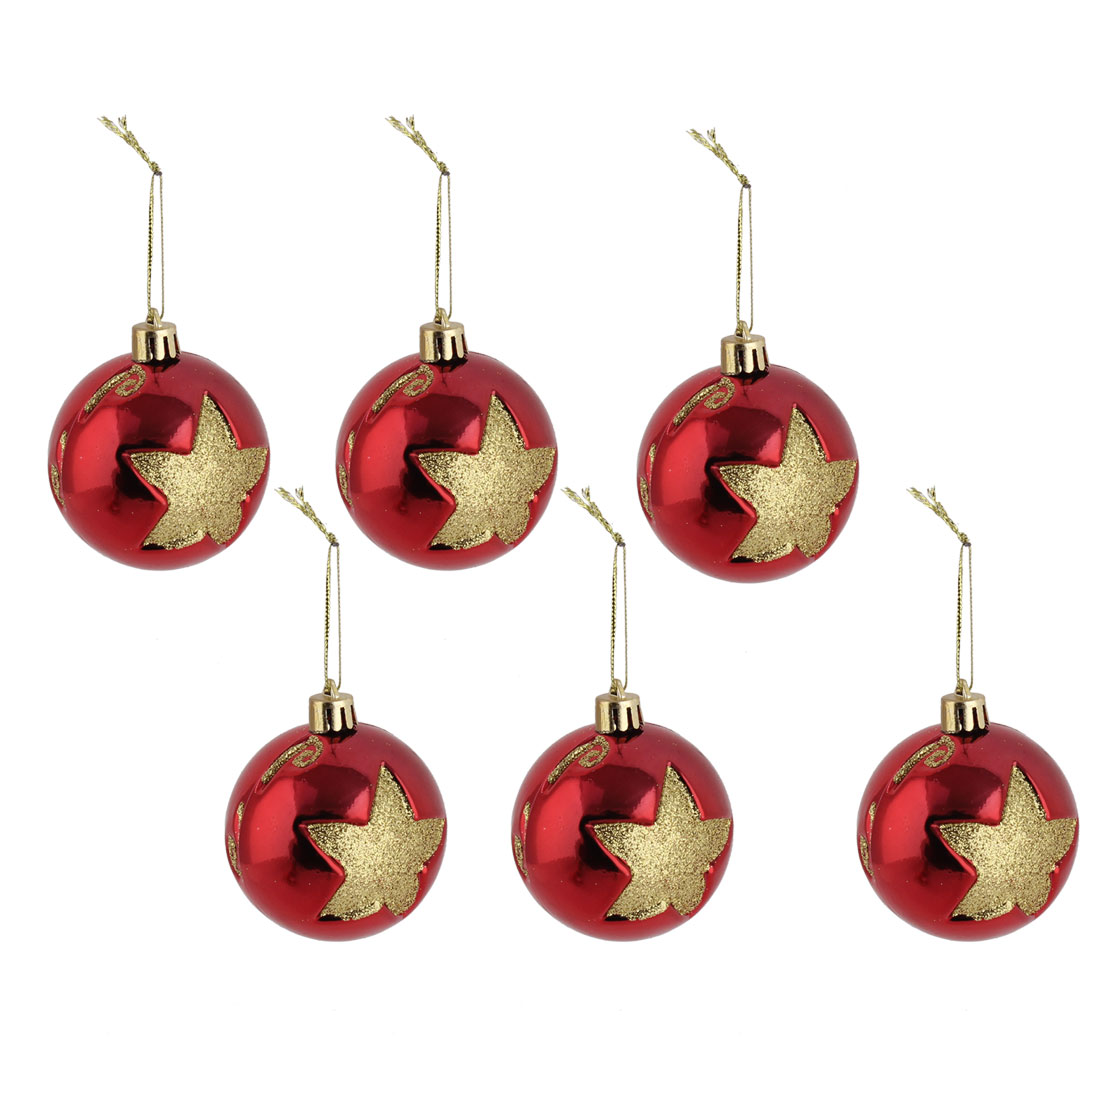 Unique Bargains Party Christmas Star Pattern Artificial Collection Festive Hanging Ball 6 Pcs